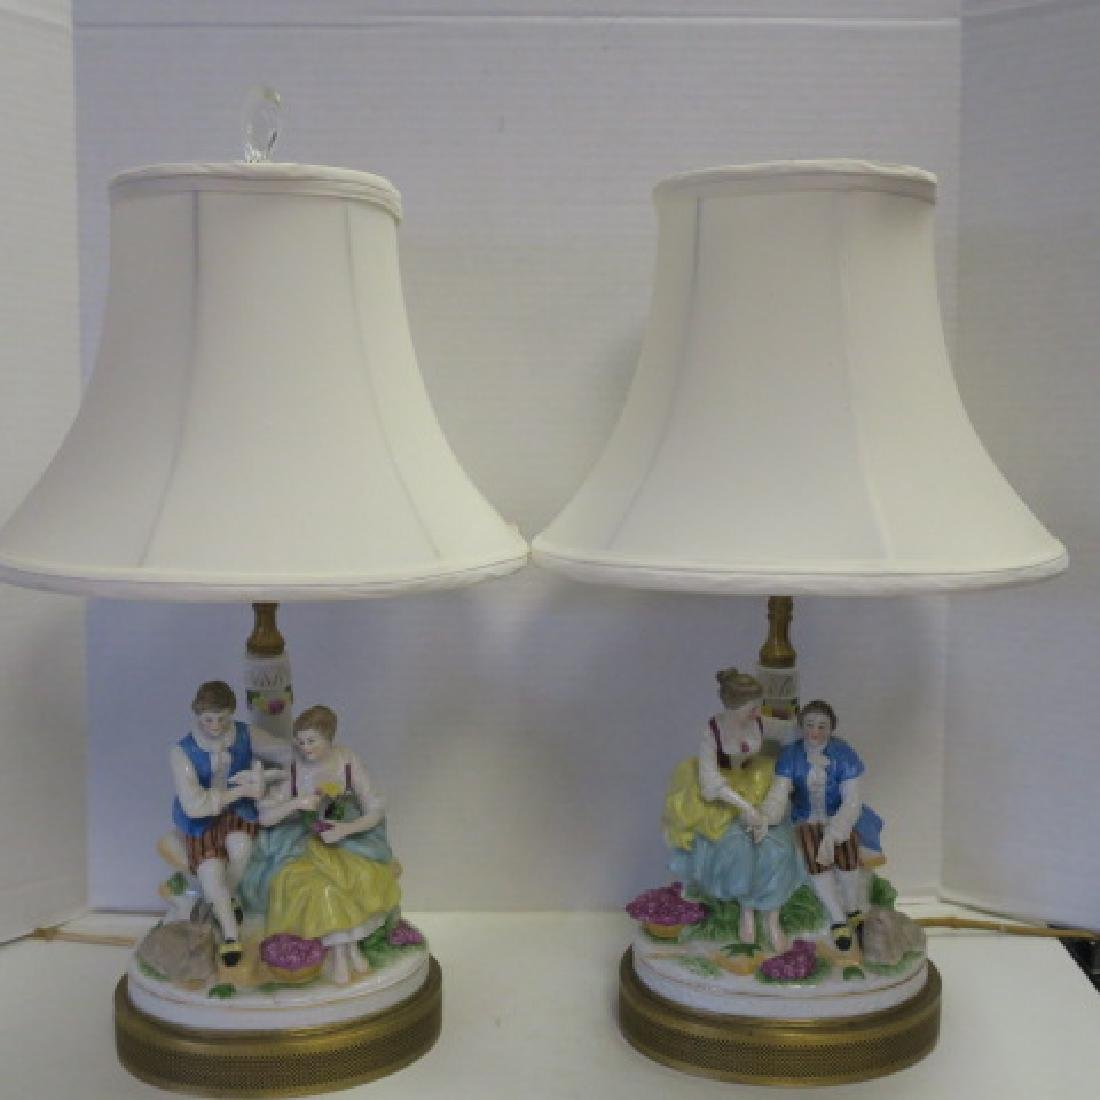 Two Porcelain Figural Table Lamps: